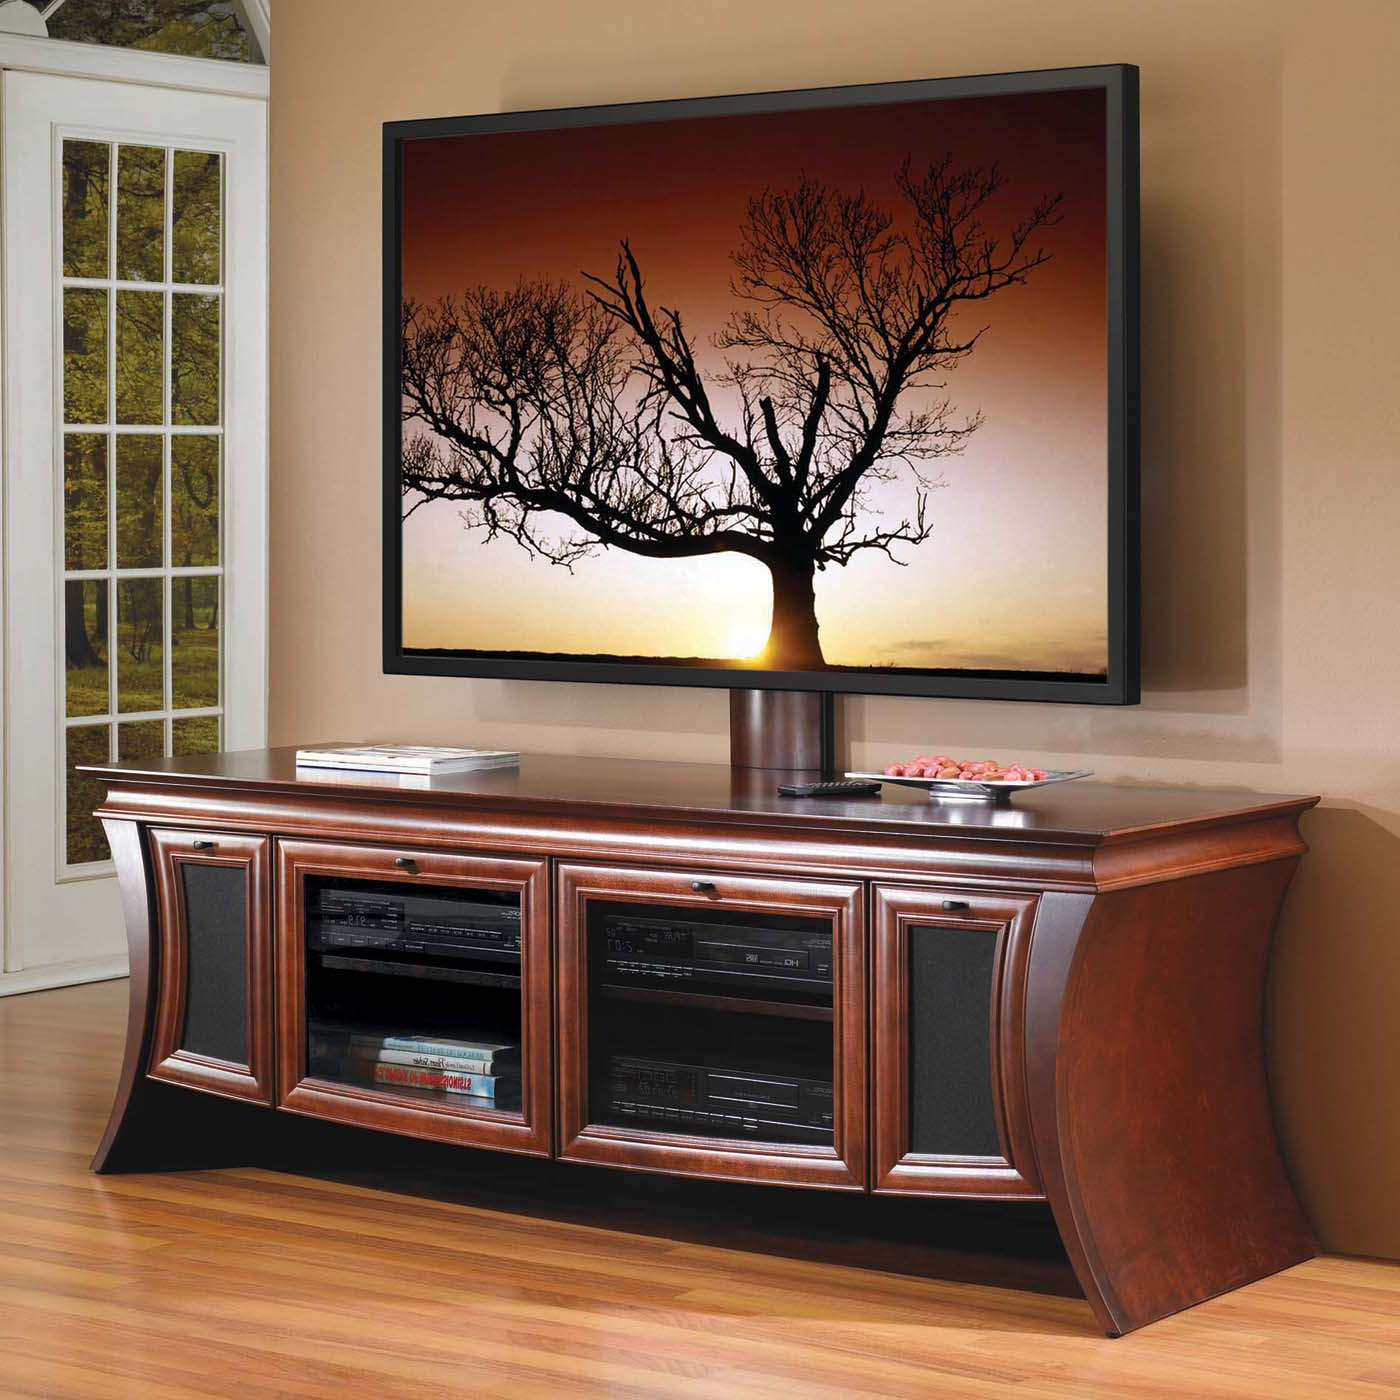 Wooden Tv Cabinets With Glass Doors In Popular Amish Tv Stand Ohio Solid Wood Media Console Corner Entertainment (View 10 of 20)